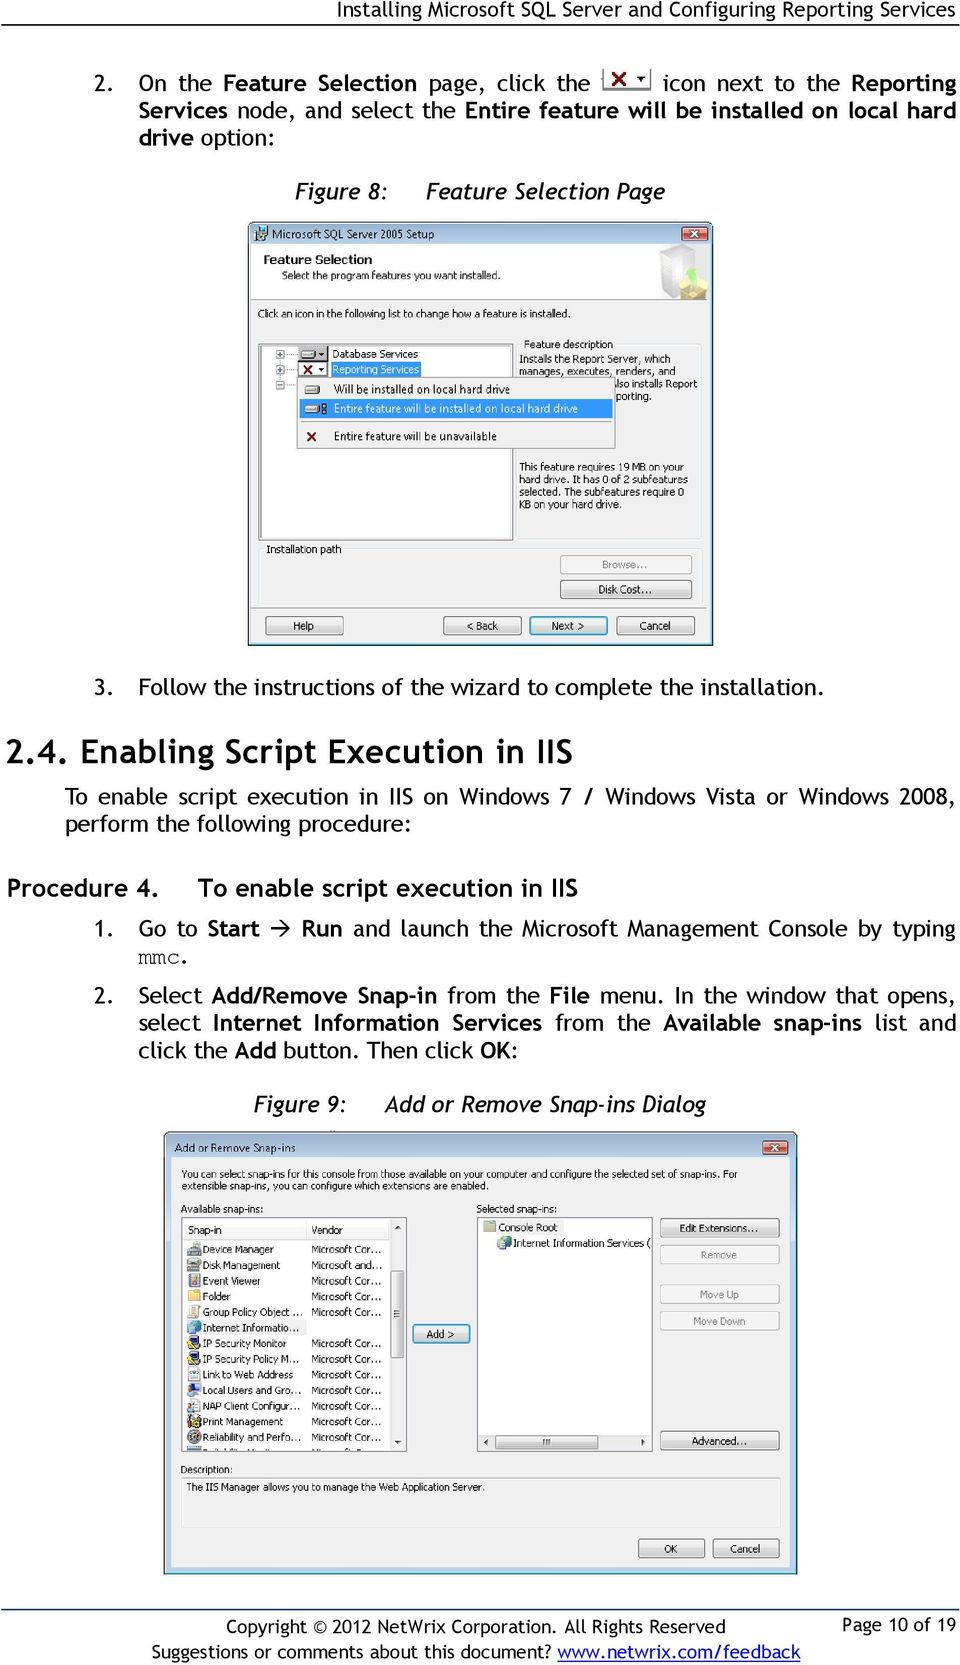 Enabling Script Execution in IIS To enable script execution in IIS on Windows 7 / Windows Vista or Windows 2008, perform the following procedure: Procedure 4. To enable script execution in IIS 1.